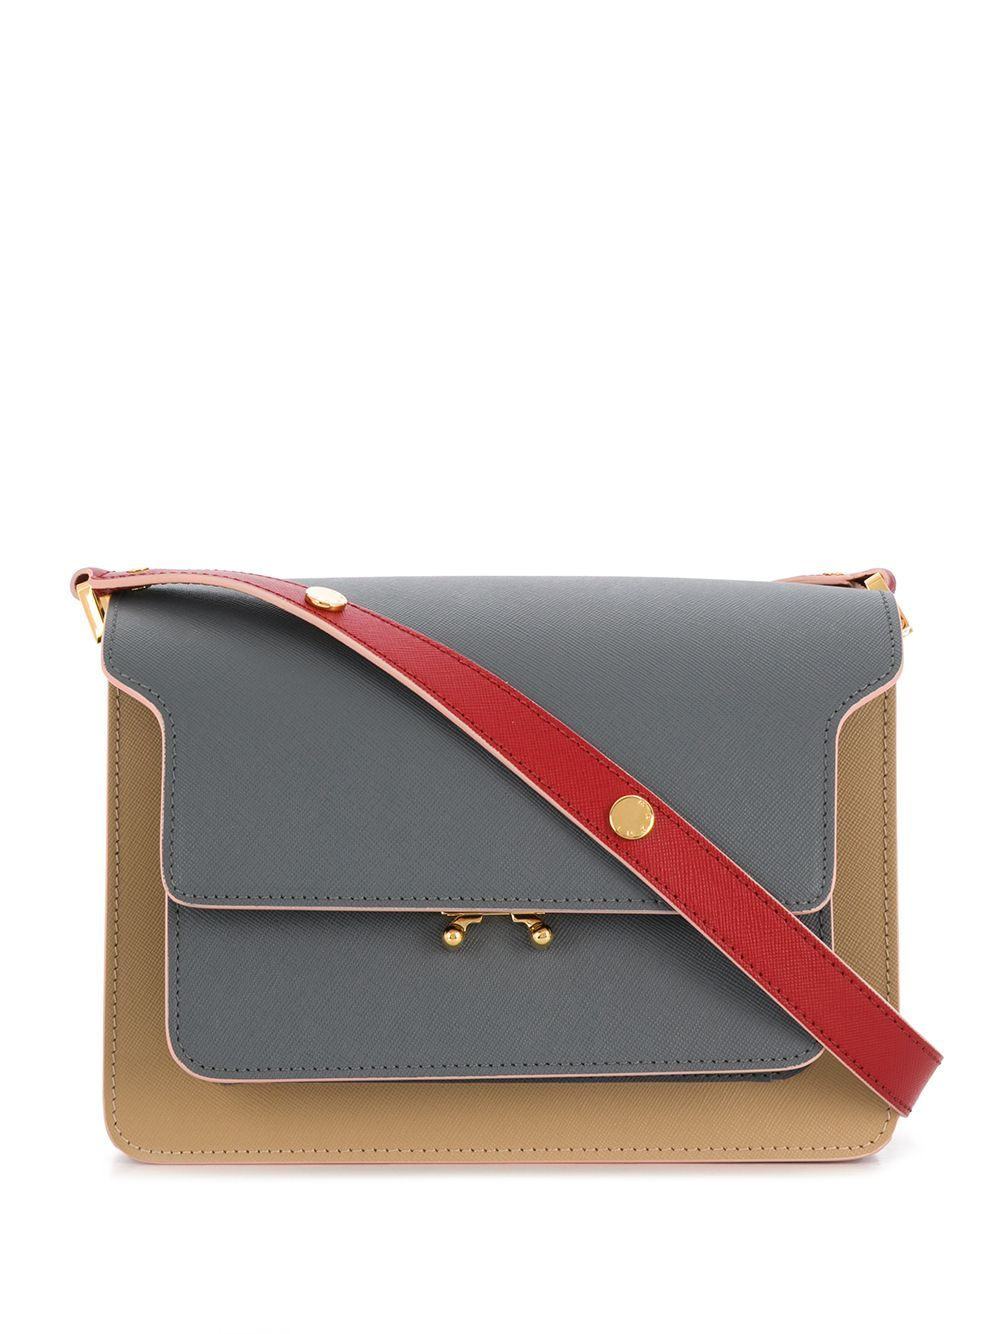 MARNI Trunk two-tone shoulder bag